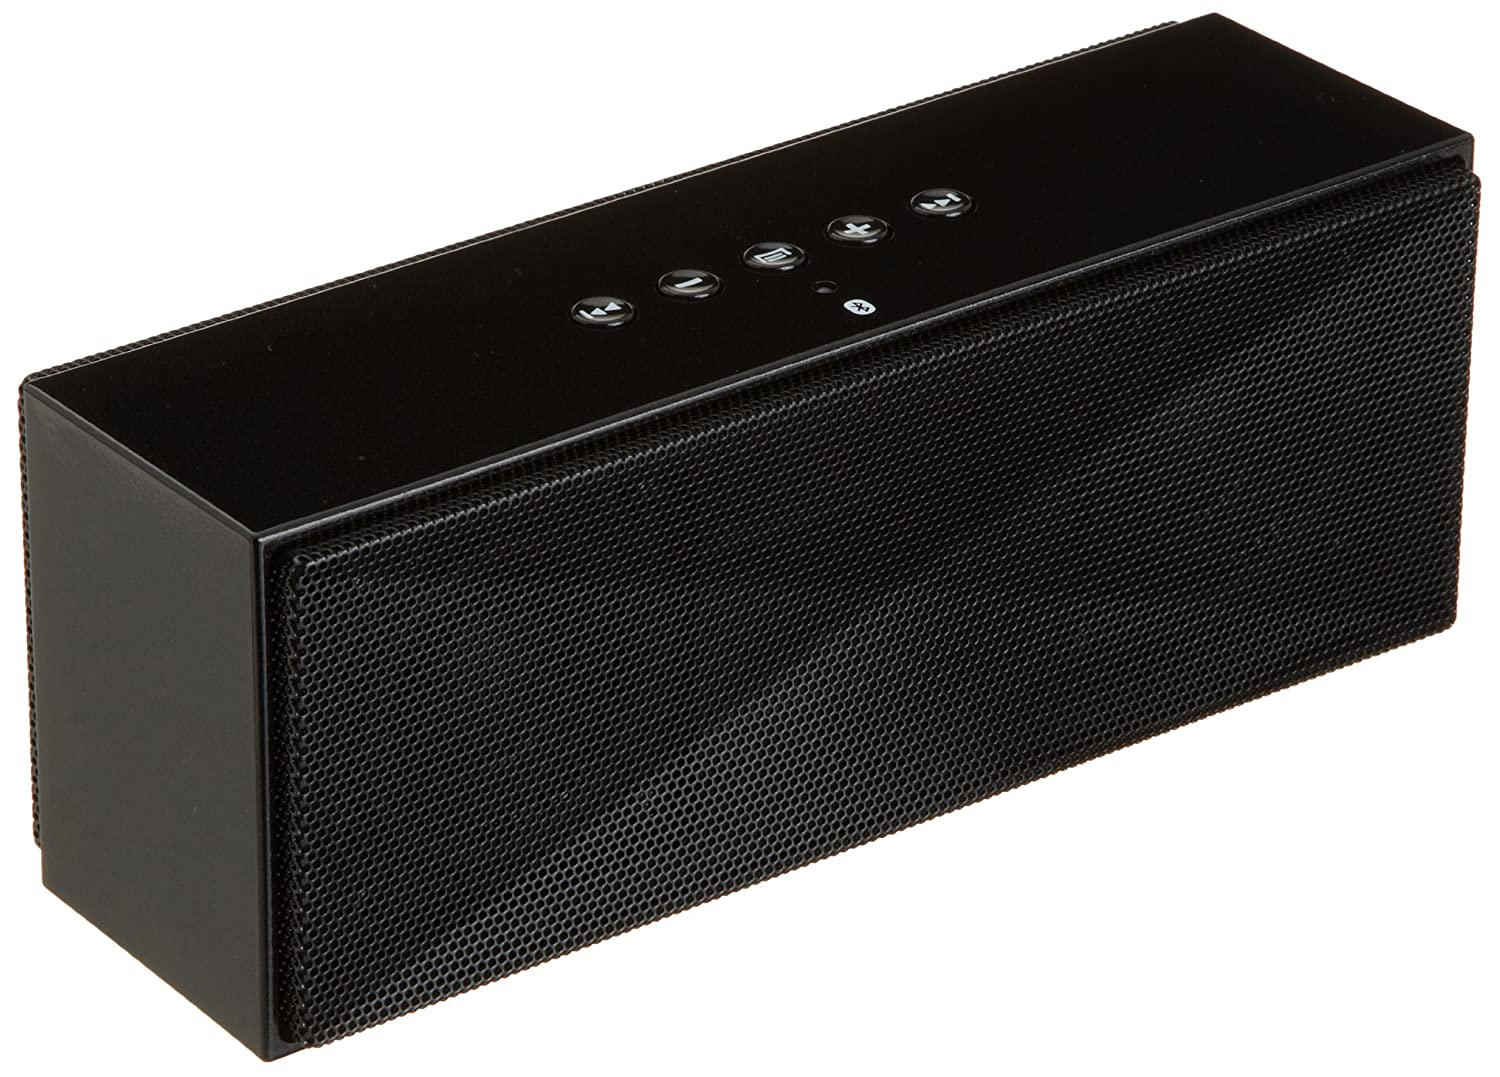 The 10 Best Cheap Bluetooth Speakers of 2018 - Consumer Top